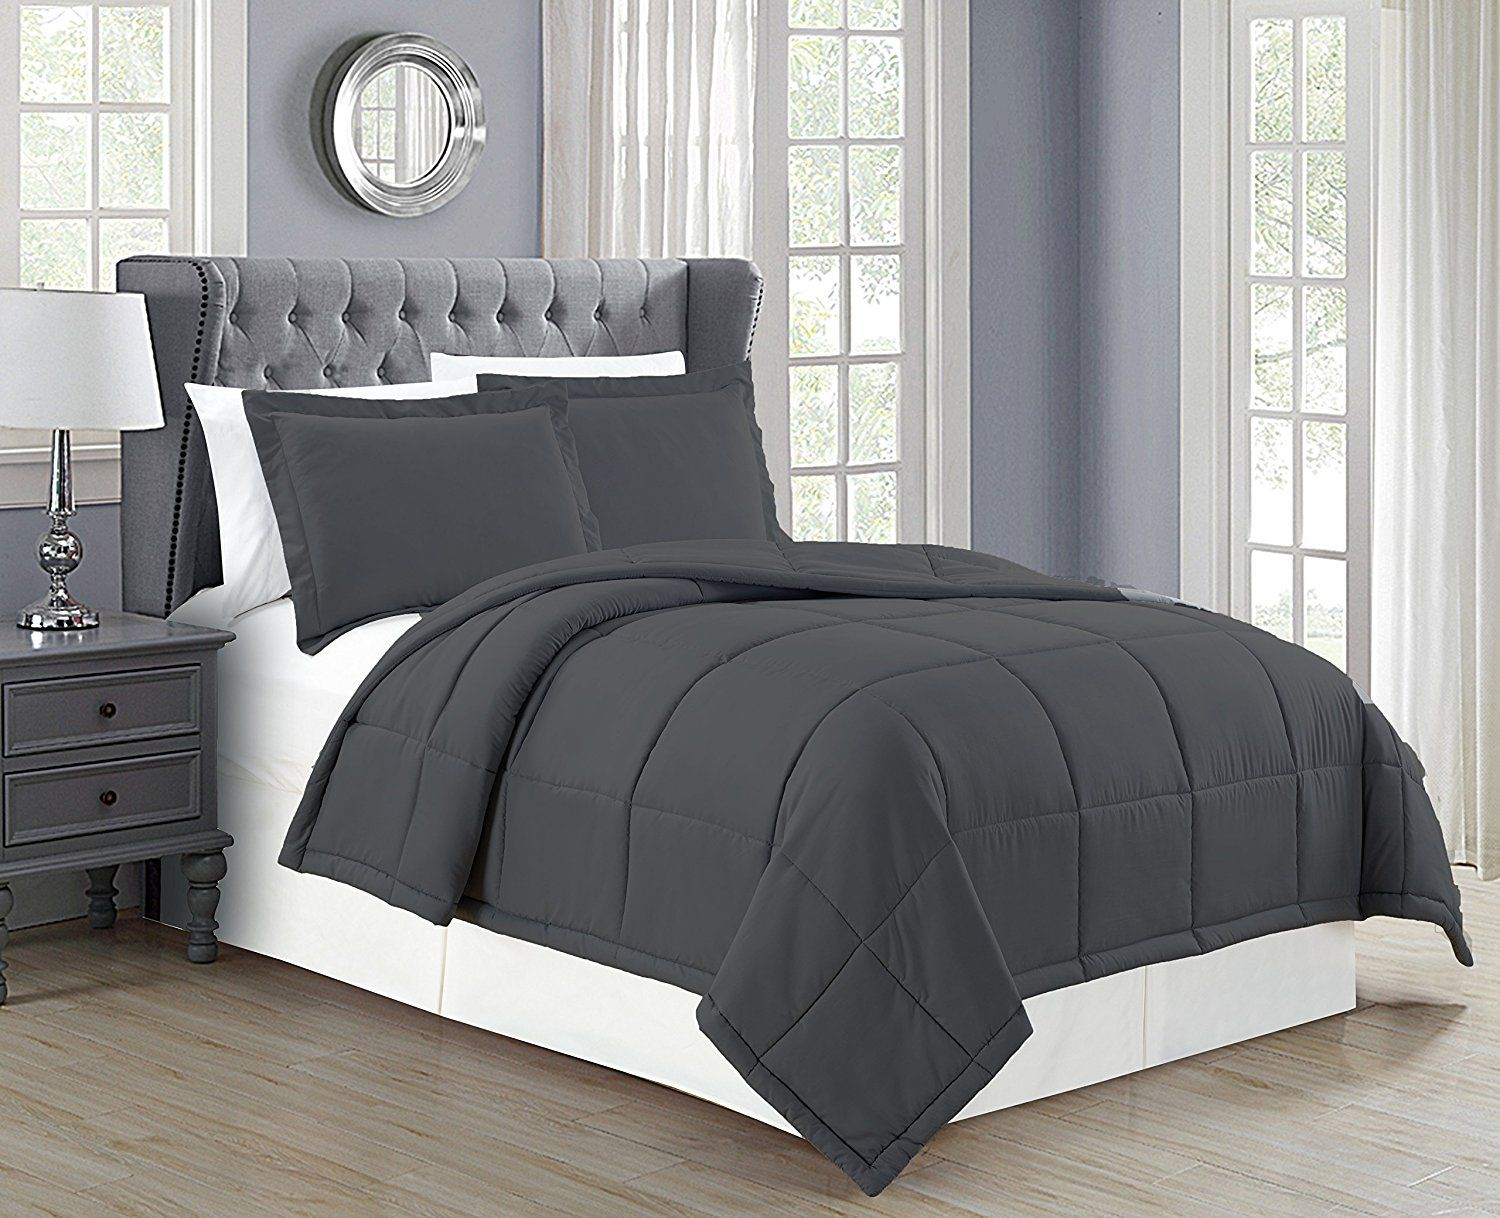 Charcoal Bedding Sets Delboutree Charcoal Gray Turquoise Bedding Sets Sale Houses